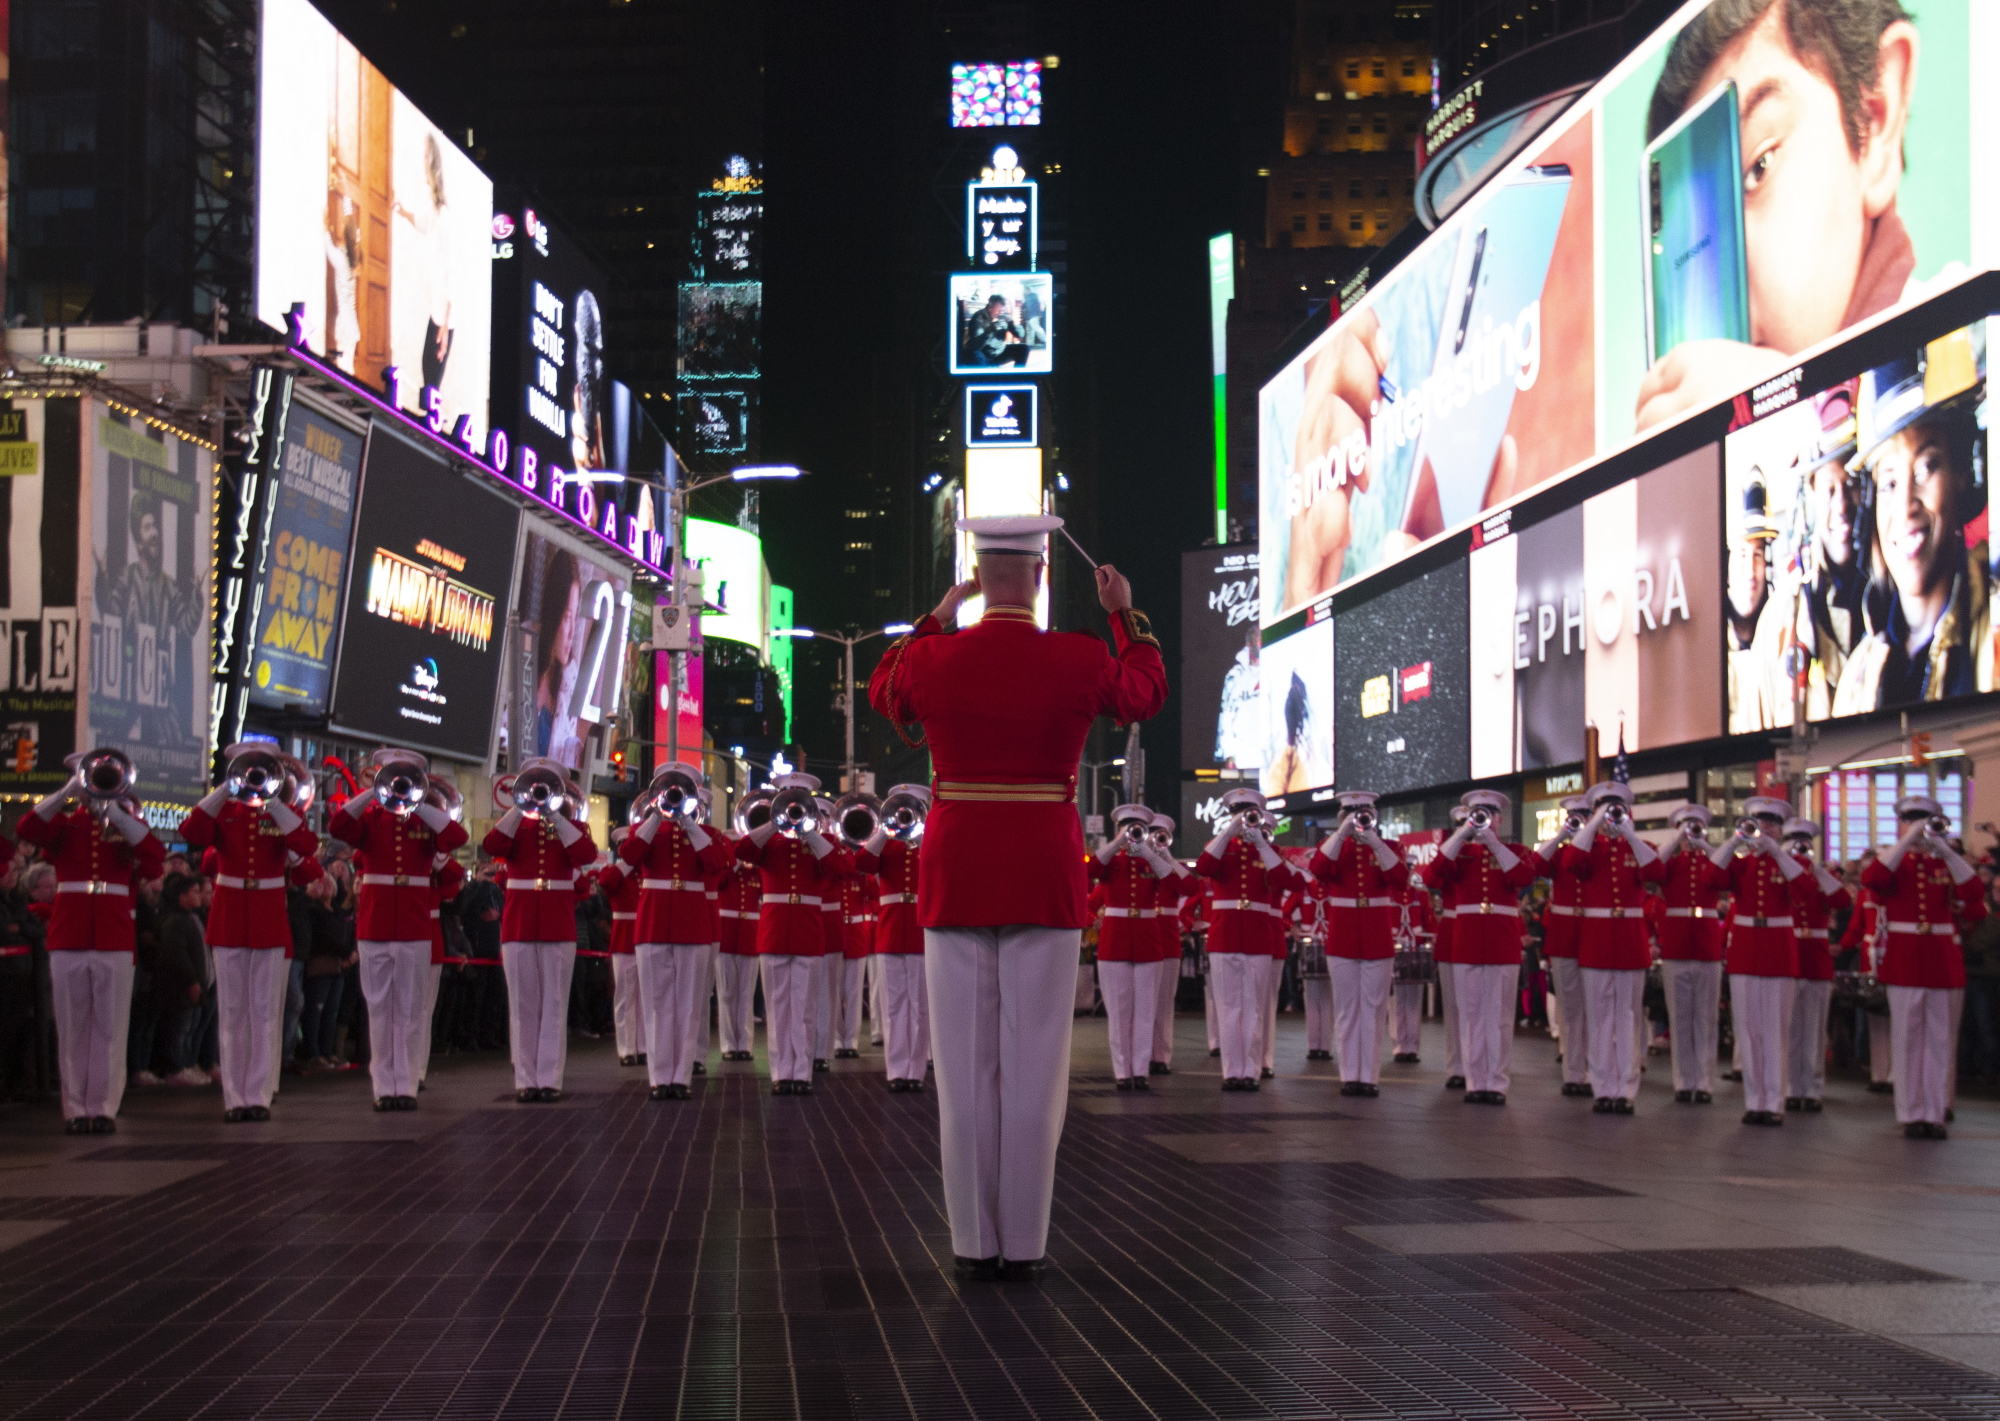 The Marine Corps Drum and Bugle Corps performs in Times Square in New York to celebrate the Marine Corps' 244th birthday on Nov. 10, 2019, ahead of Veterans Day. (Cpl. Marvin D. Chavez/Marine Corps)